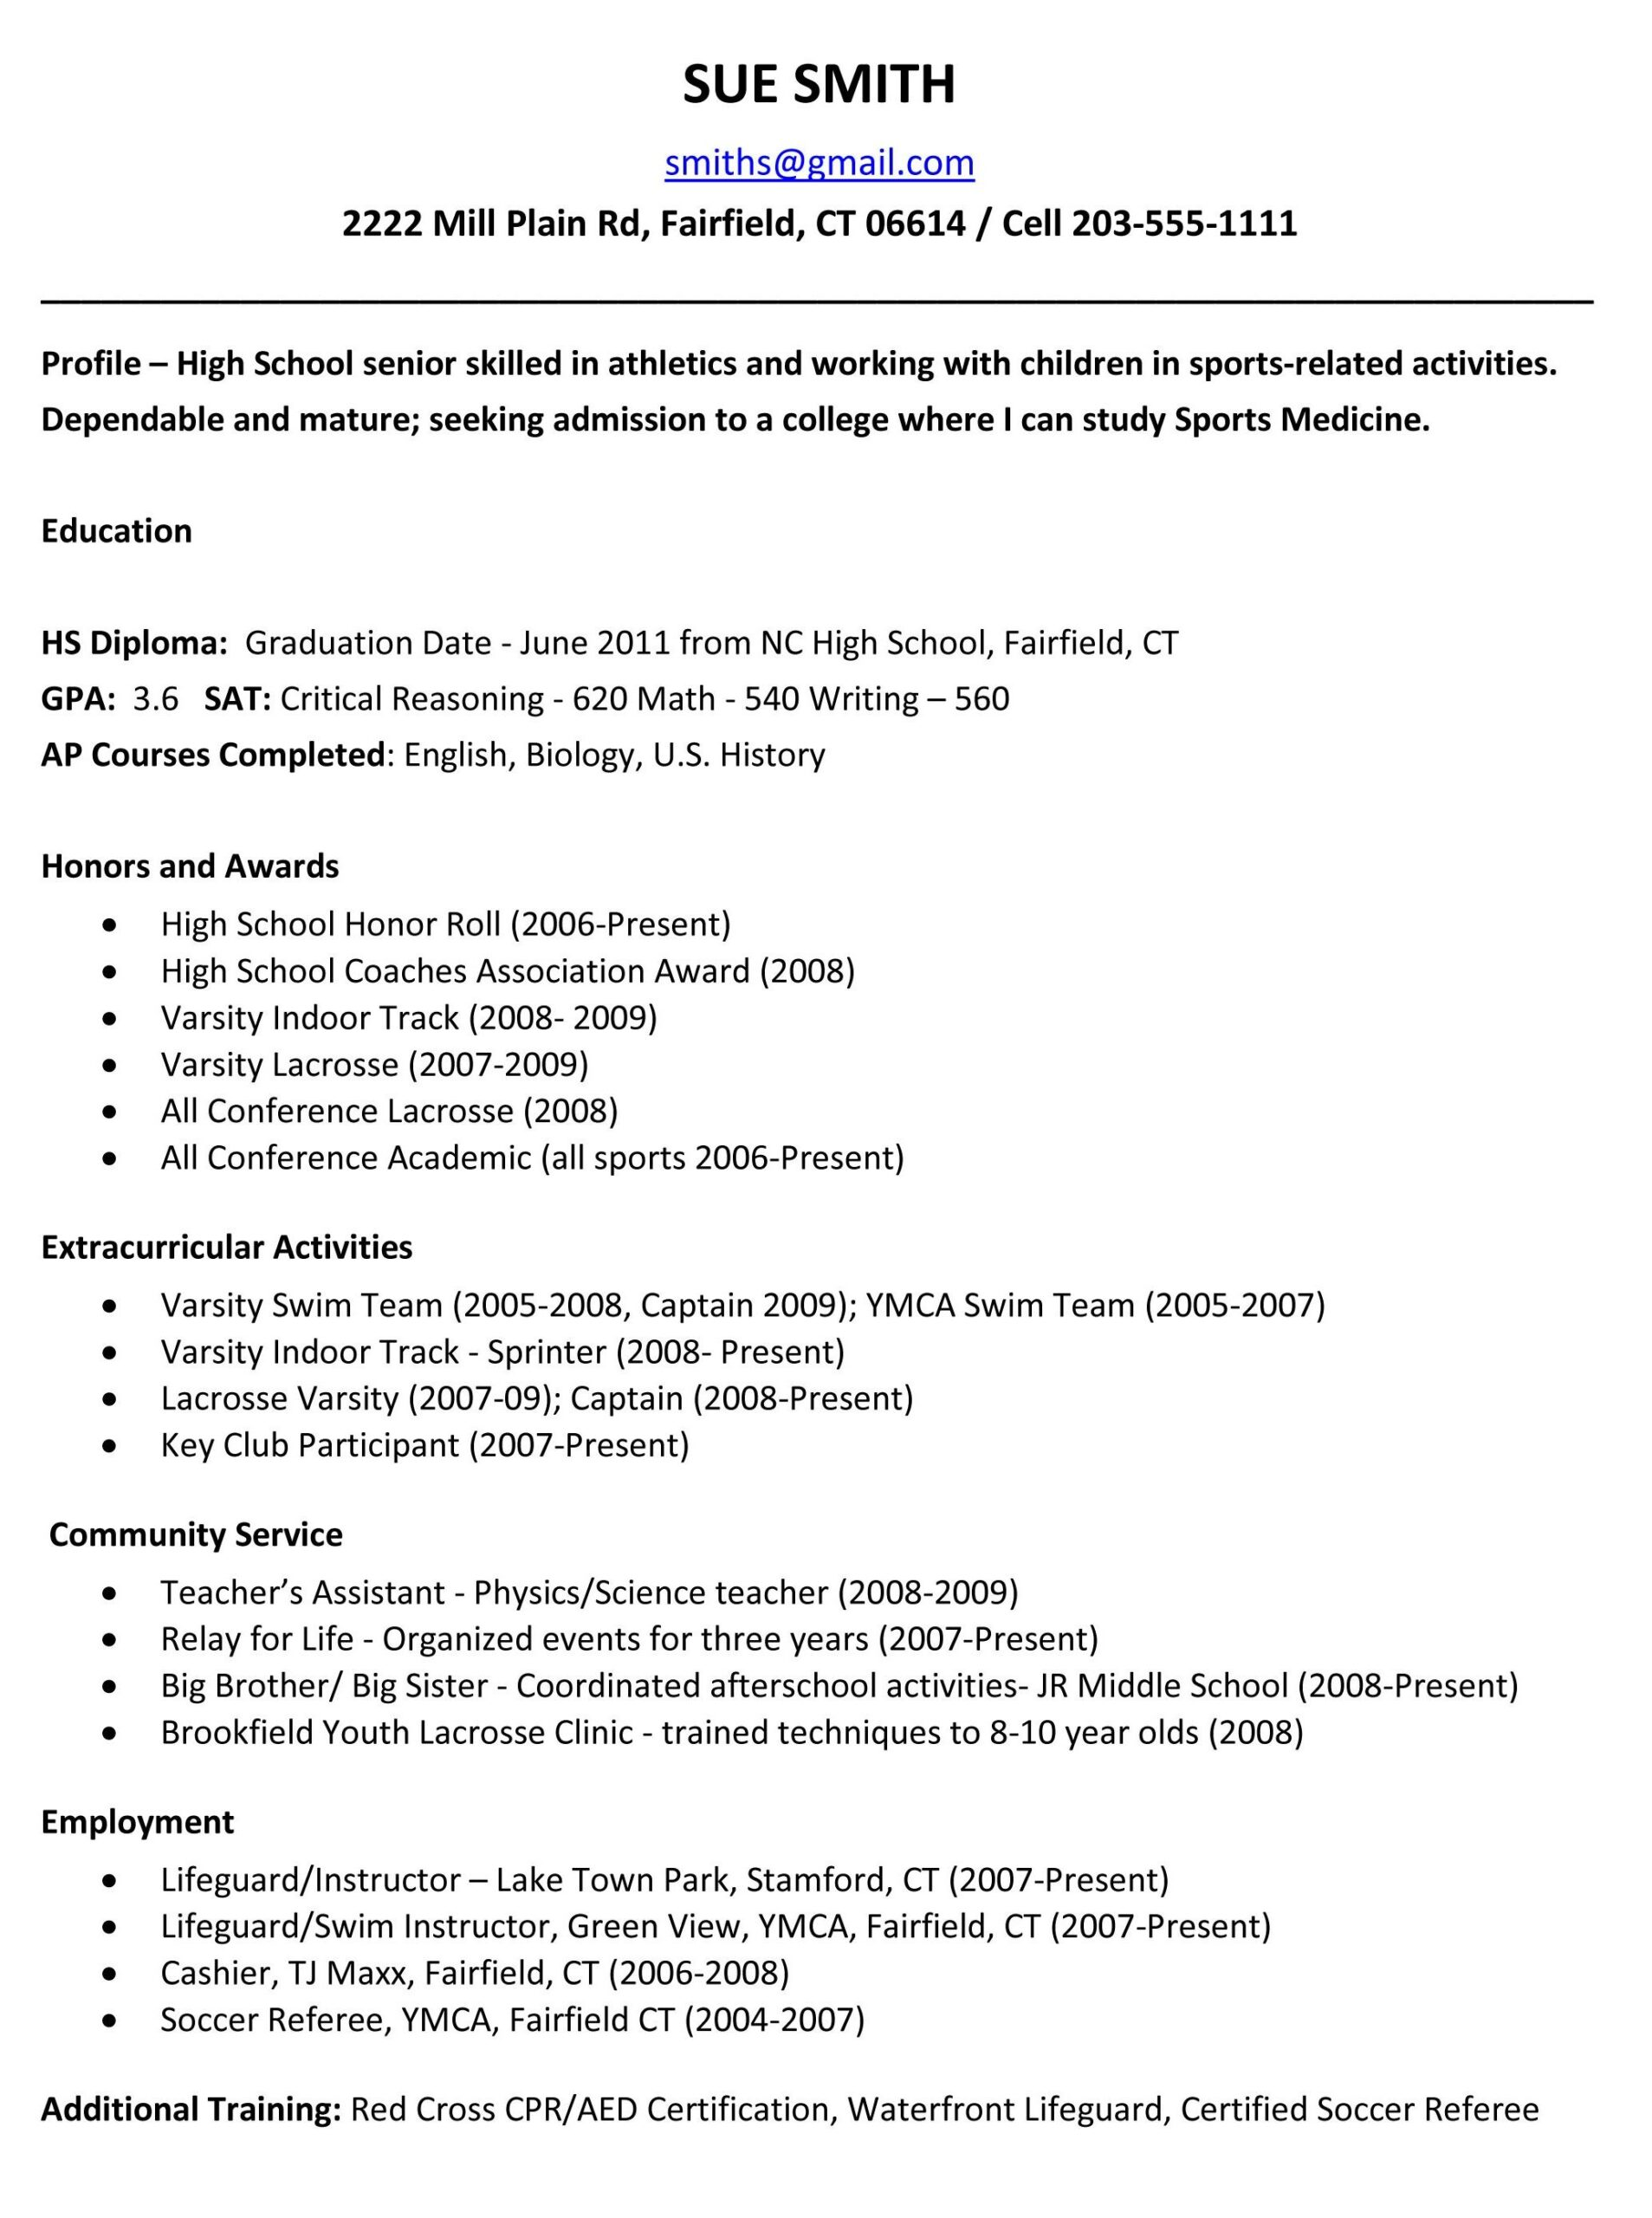 sample resumes high school resume template college application for seniors medical Resume Sample College Application Resume For High School Seniors